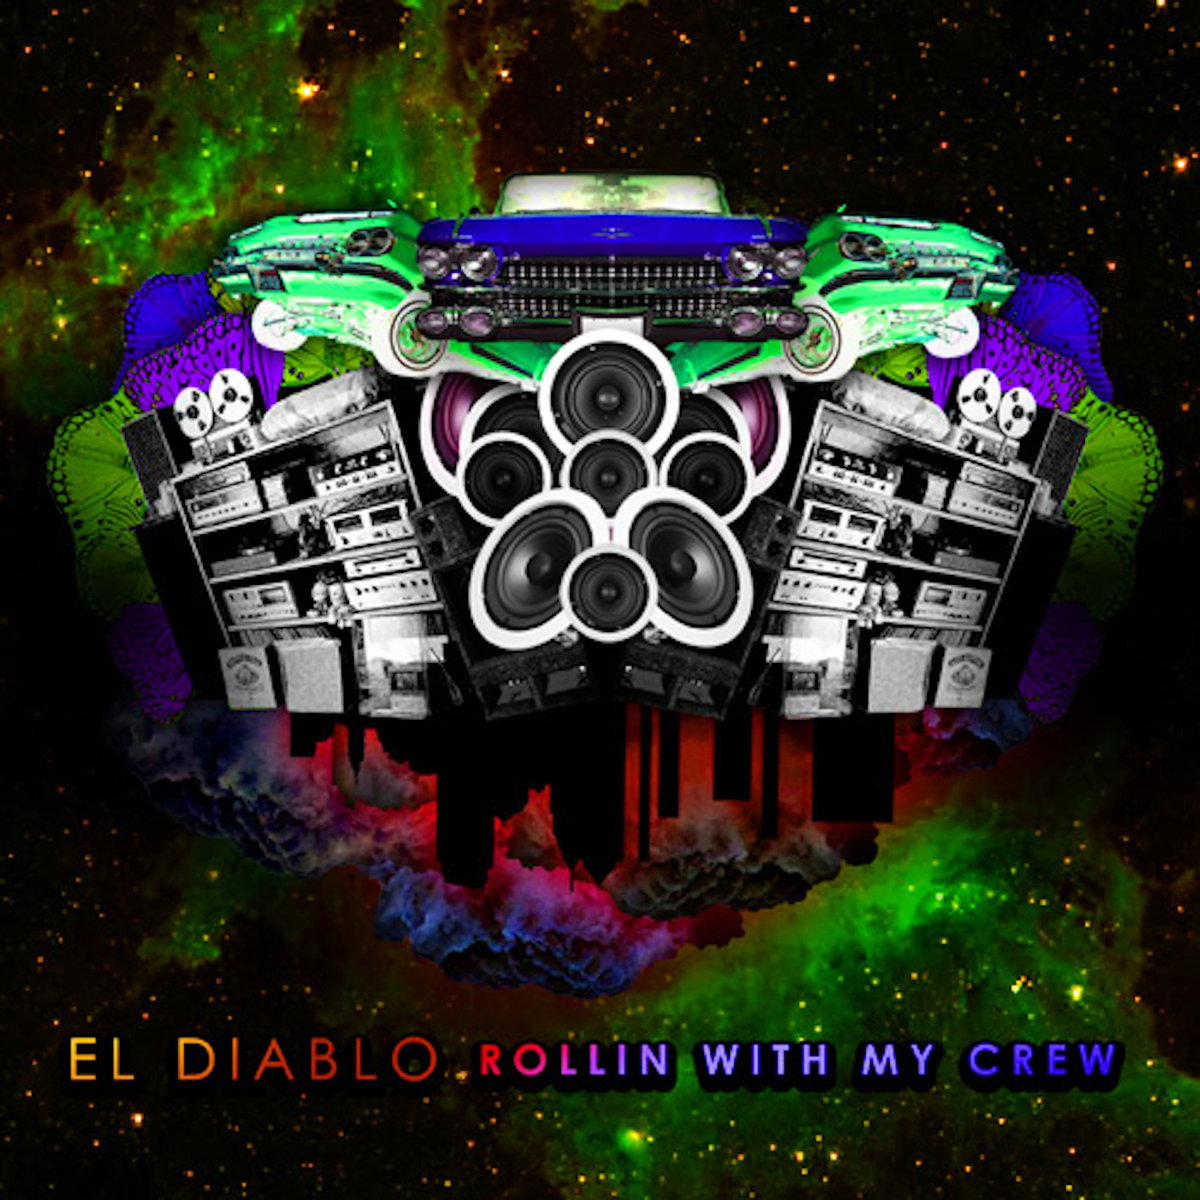 El Diablo - Rollin With My Crew